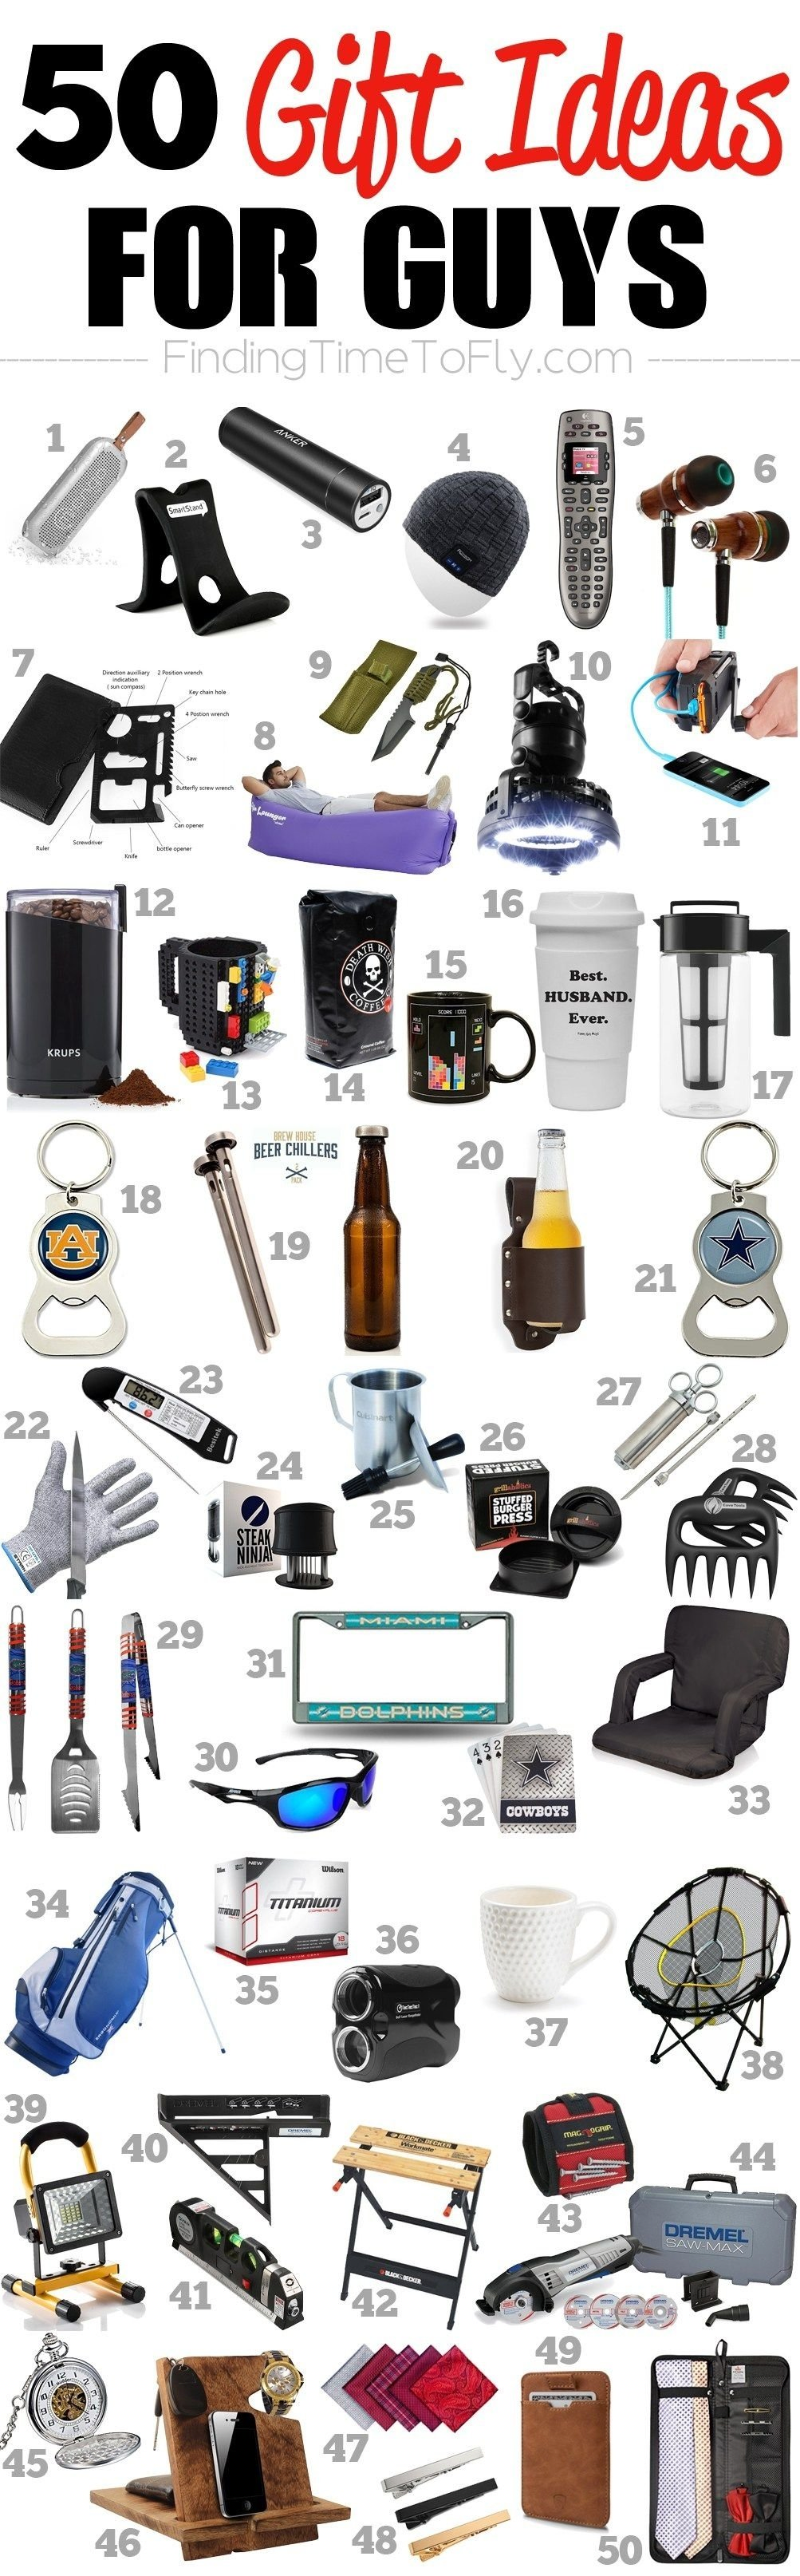 10 Amazing Great Gift Ideas For Guys 50 gifts for guys for every occasion outdoor gear christmas gifts 7 2020